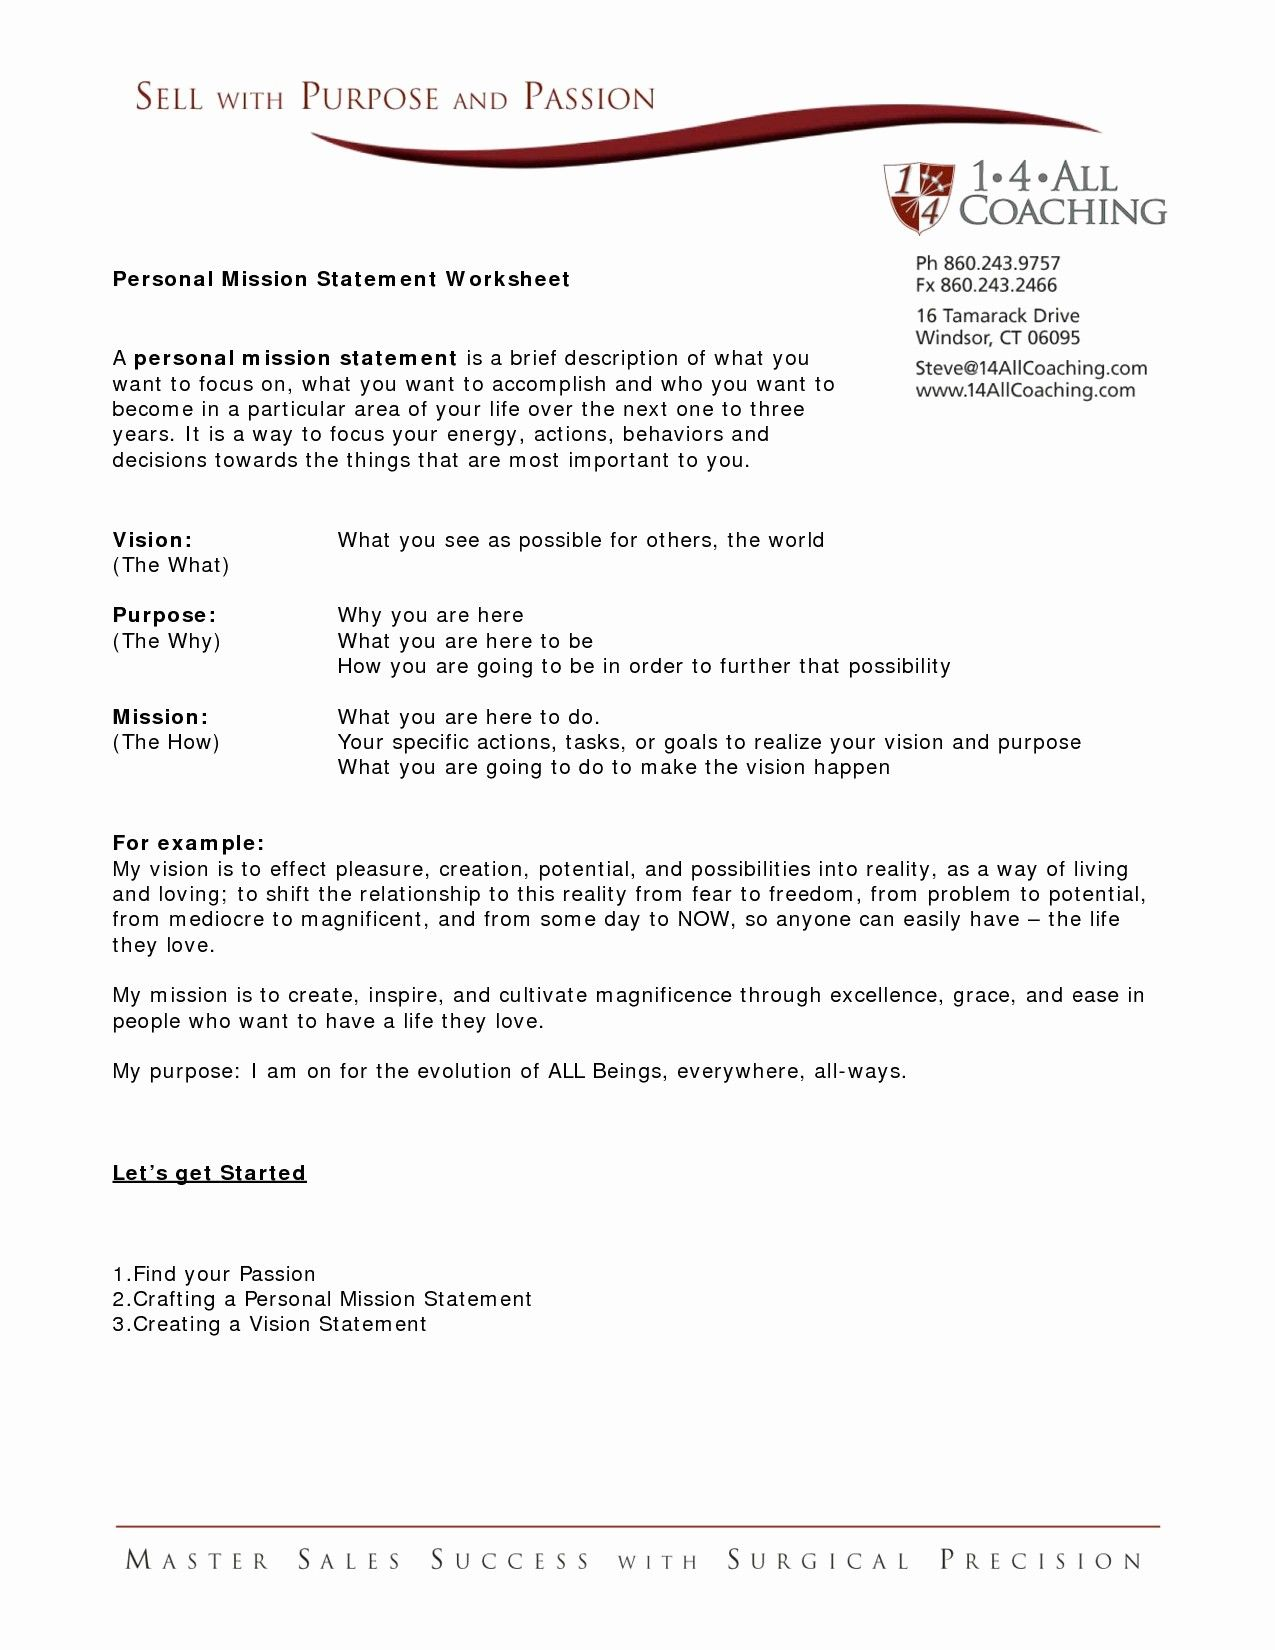 Non Profit Mission Statement Template Beautiful Vision Statement For Early Chil Mission Statement Examples Mission Statement Template Vision Statement Examples